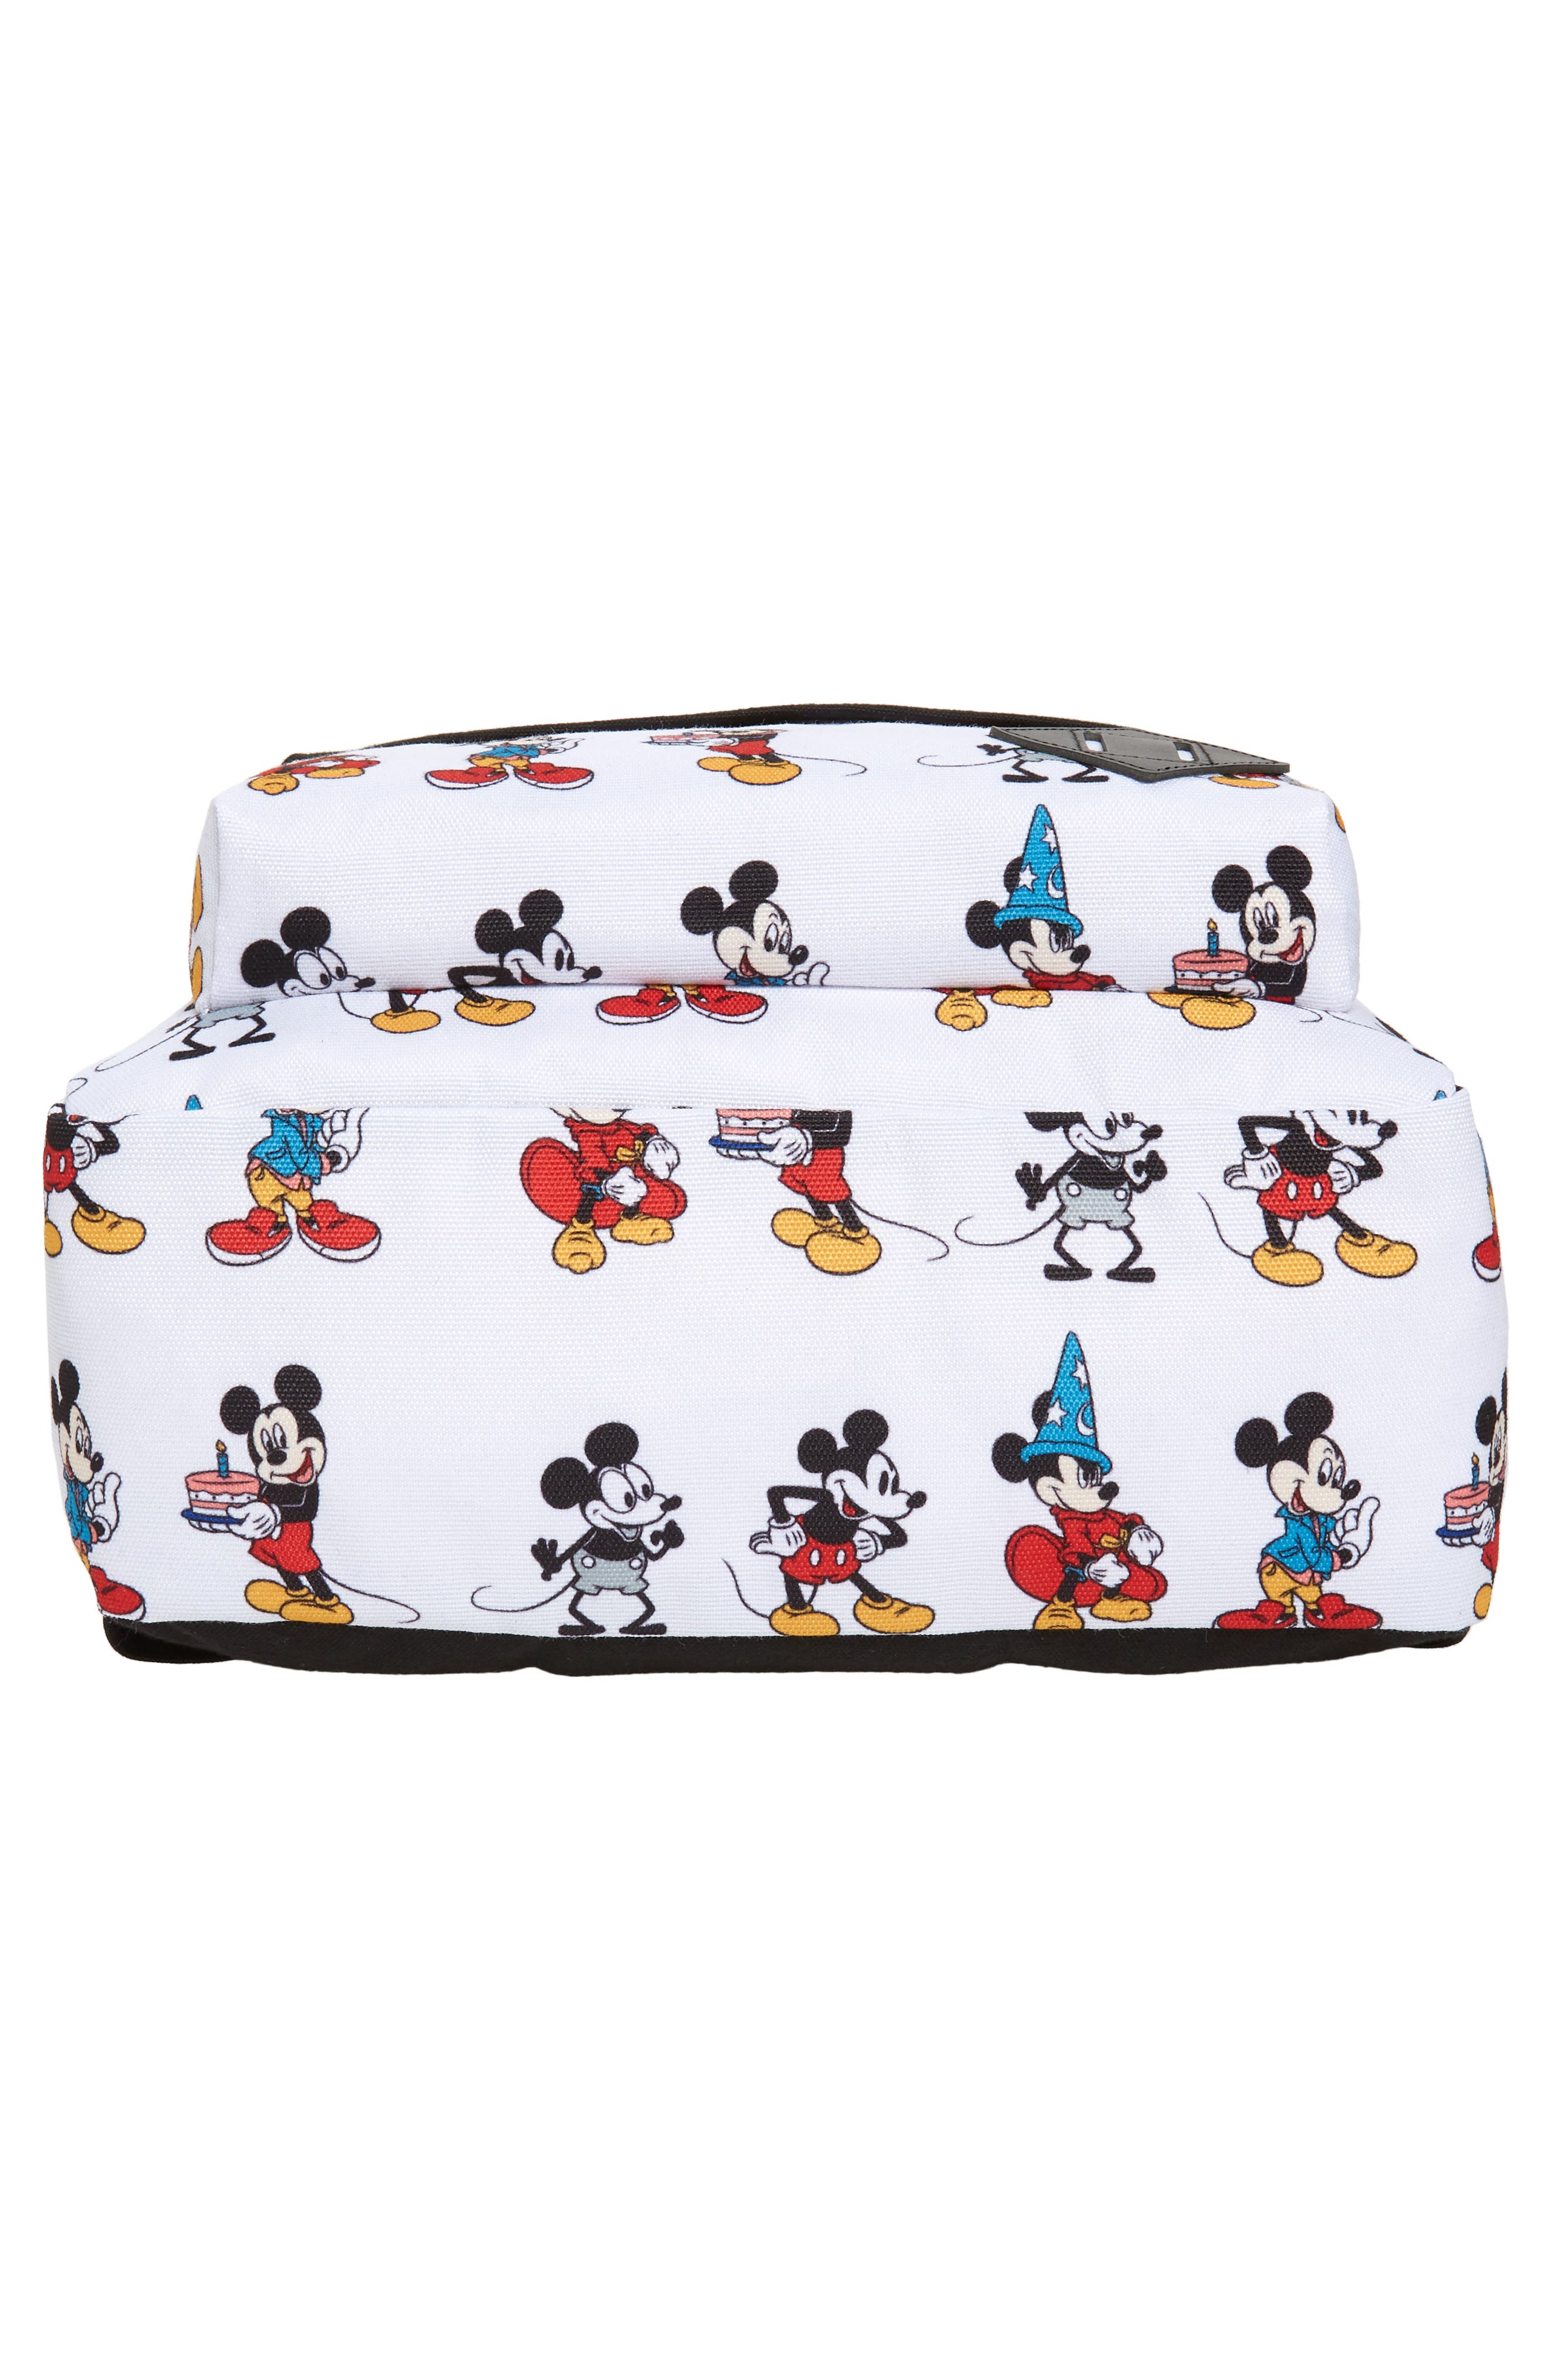 x Disney Mickey's 90th Anniversary - Mickey Through the Ages Backpack,                             Alternate thumbnail 6, color,                             WHITE